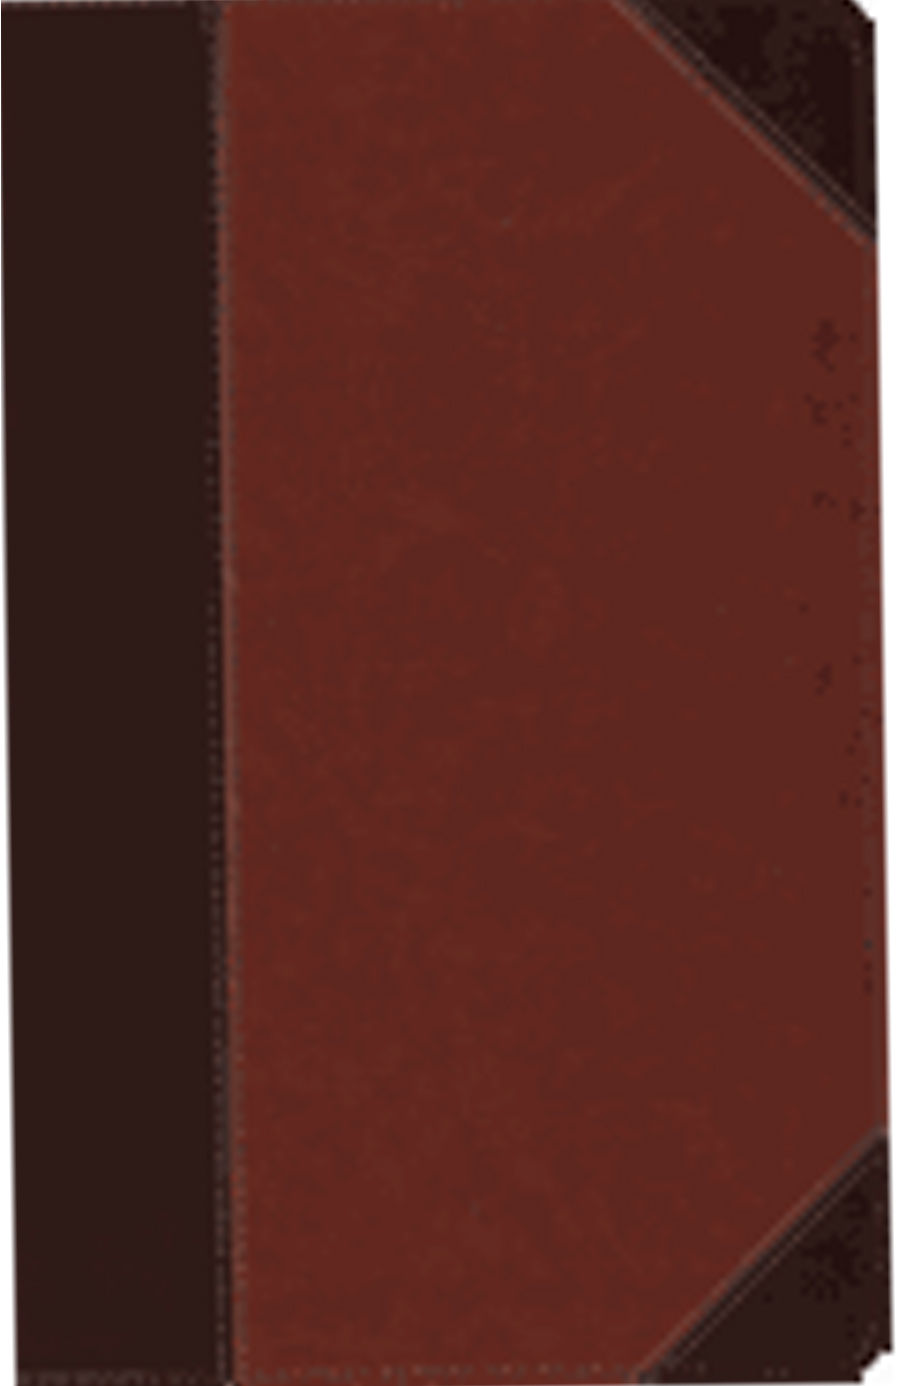 ESV Thinline Bible of Crossway Books Brown Imitation Leather 9781581347364